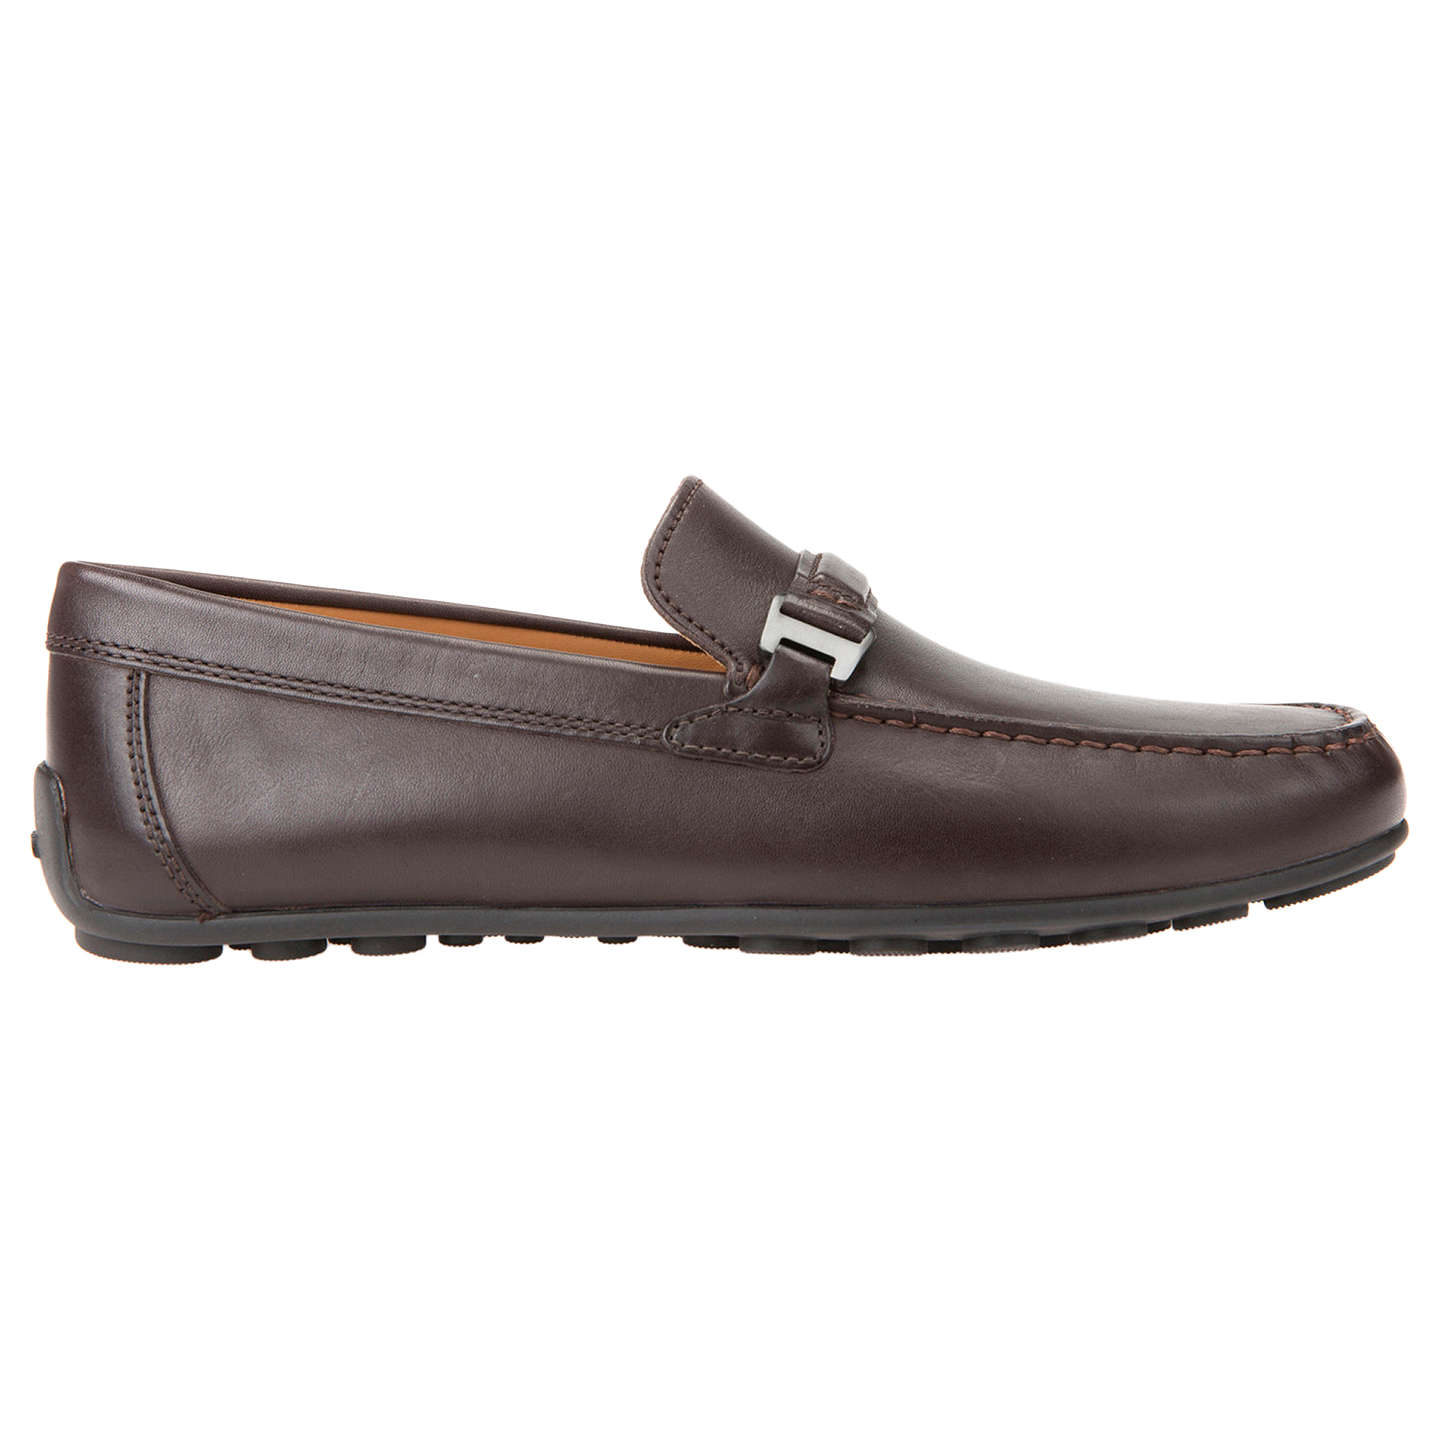 BuyGeox Giona Leather Moccasins, Chocolate, 7 Online at johnlewis.com ...